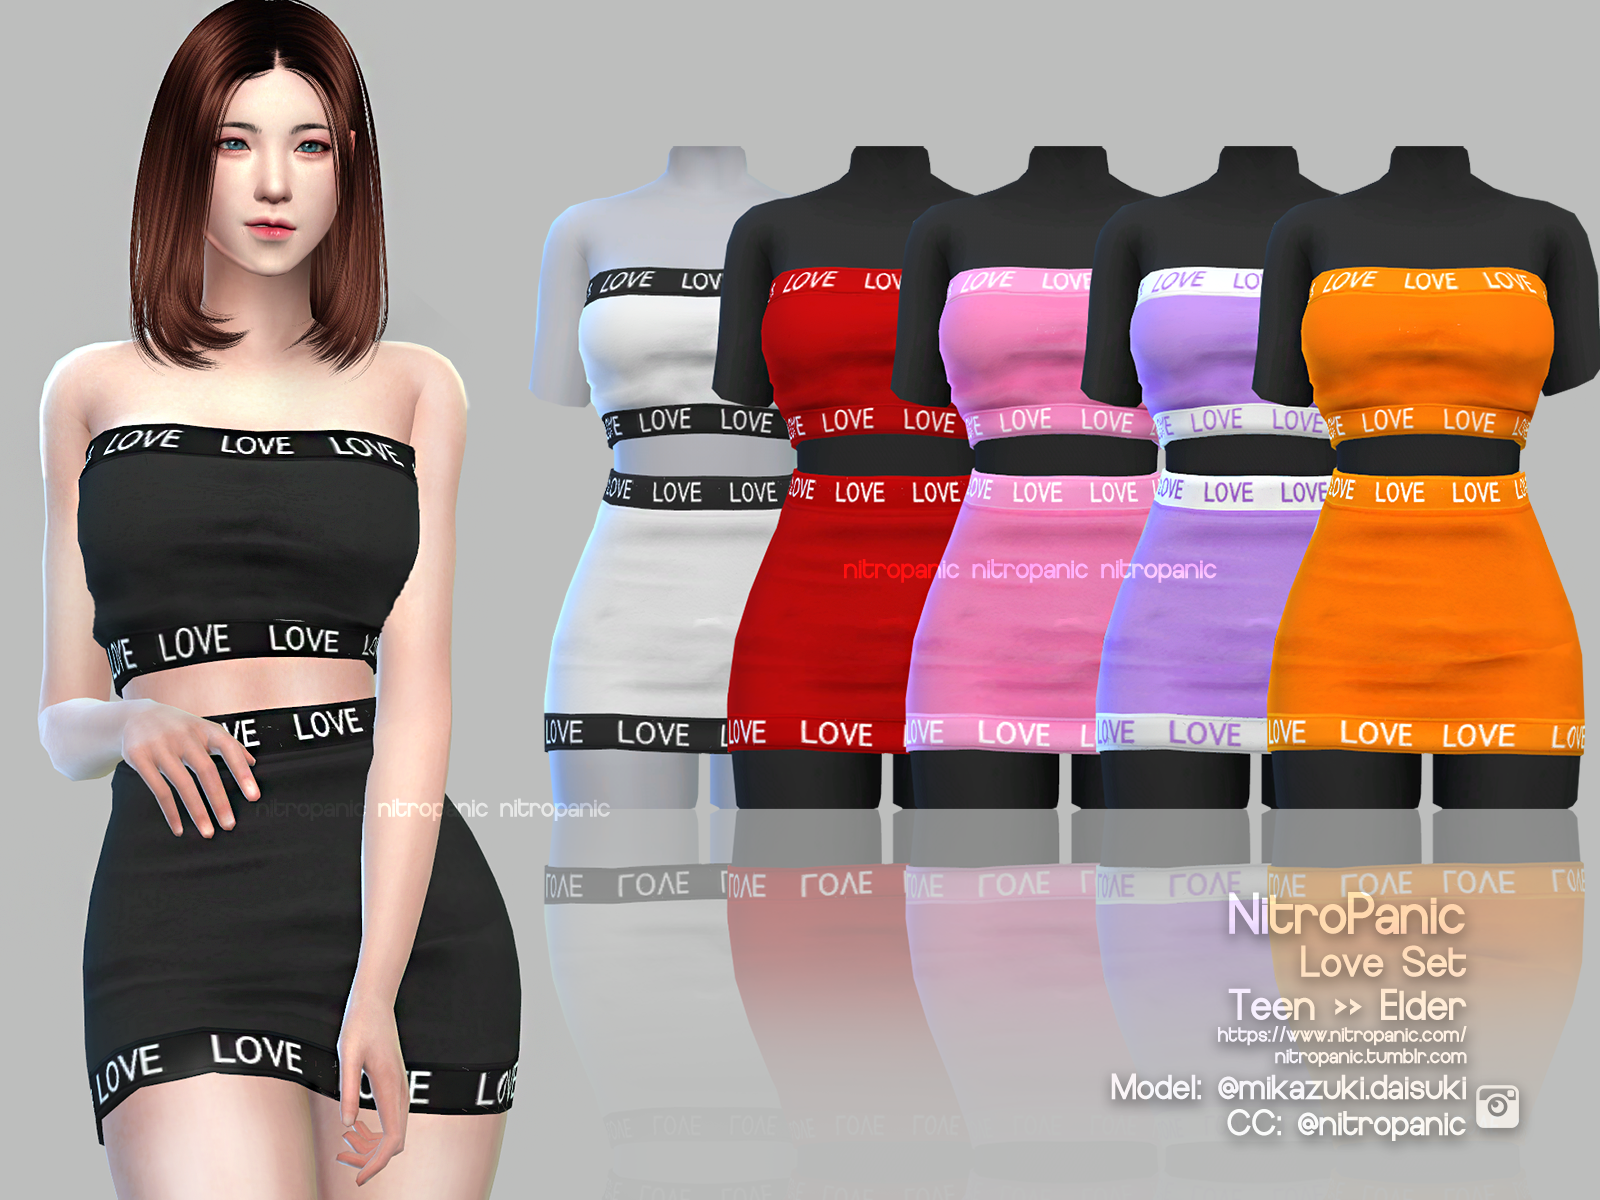 f2168880379 Love Set (BOTTOM) - The Sims 4 Download - SimsDomination